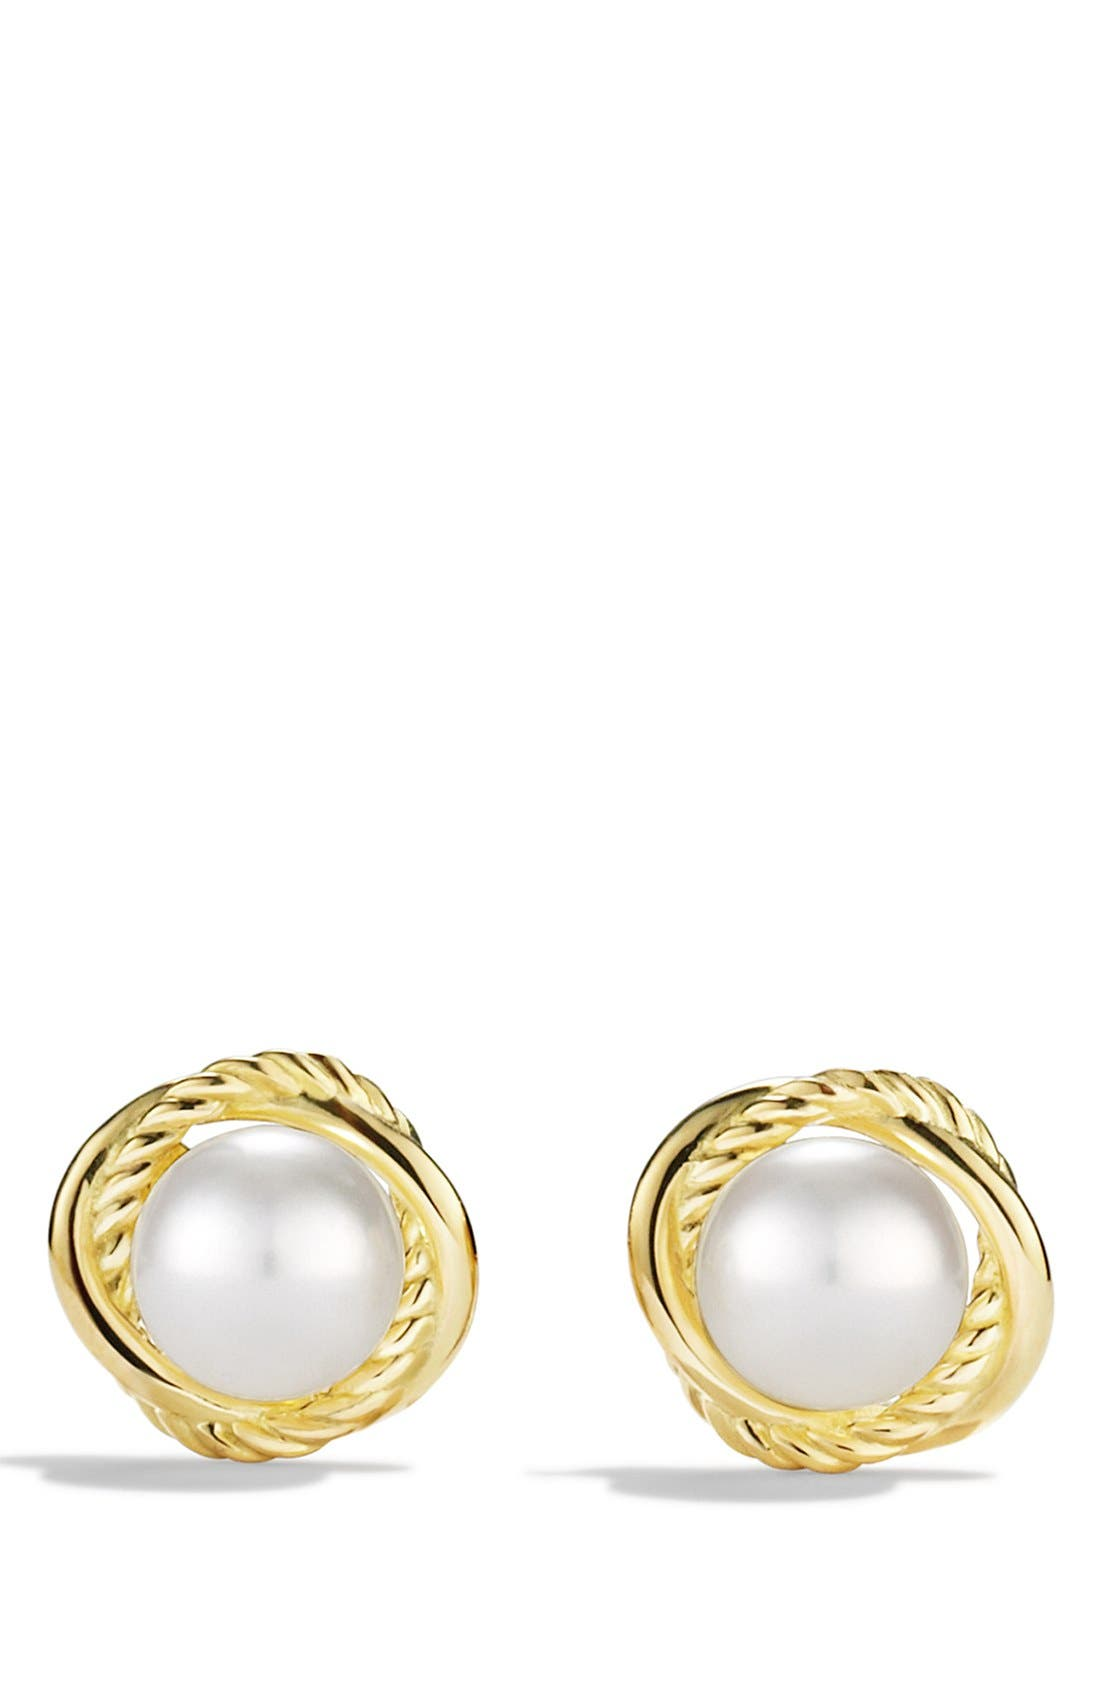 'Infinity' Earrings with Pearls in Gold,                             Alternate thumbnail 2, color,                             101